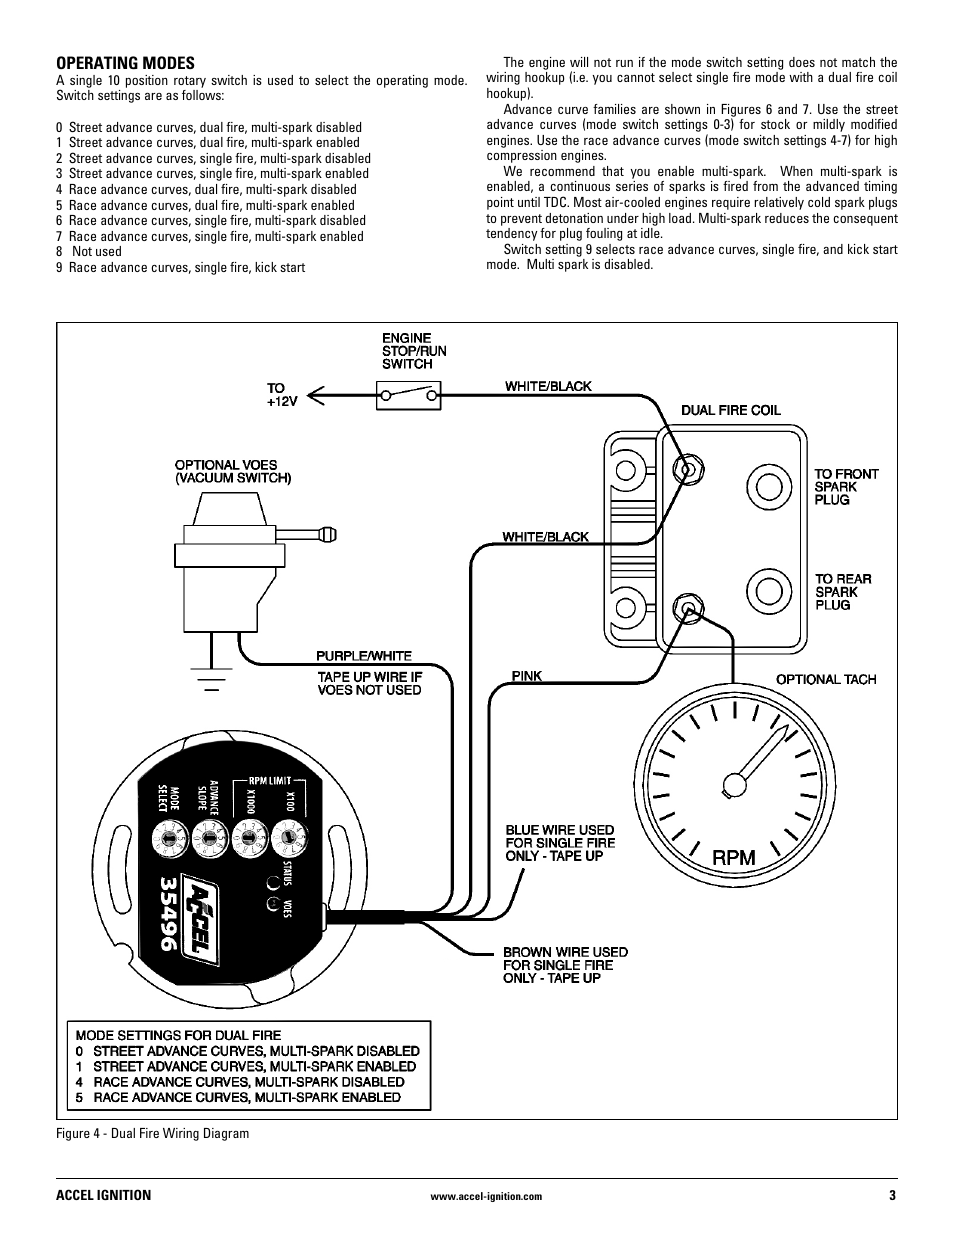 mallory ignition accel ignition 35496 page3 mallory ignition accel ignition 35496 user manual page 3 8 mallory ignition wiring diagram at bayanpartner.co